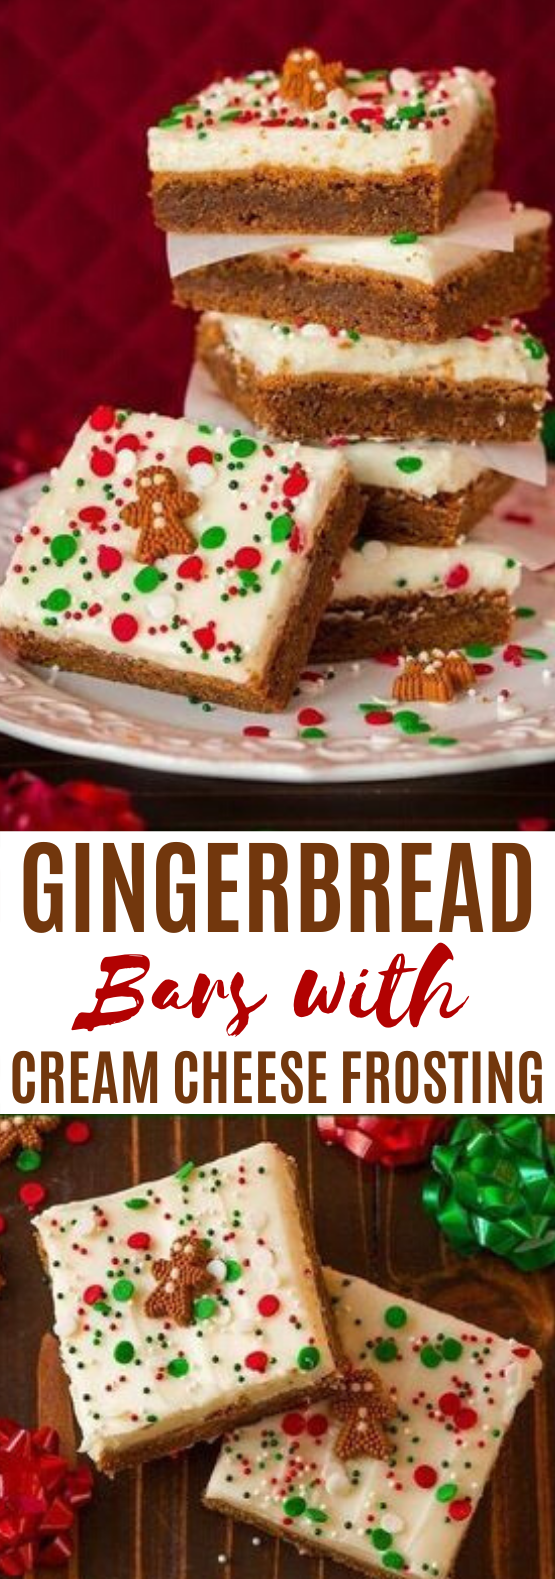 Gingerbread Bars with Cream Cheese Frosting #desserts #bars #christmas #recipes #gingerbread